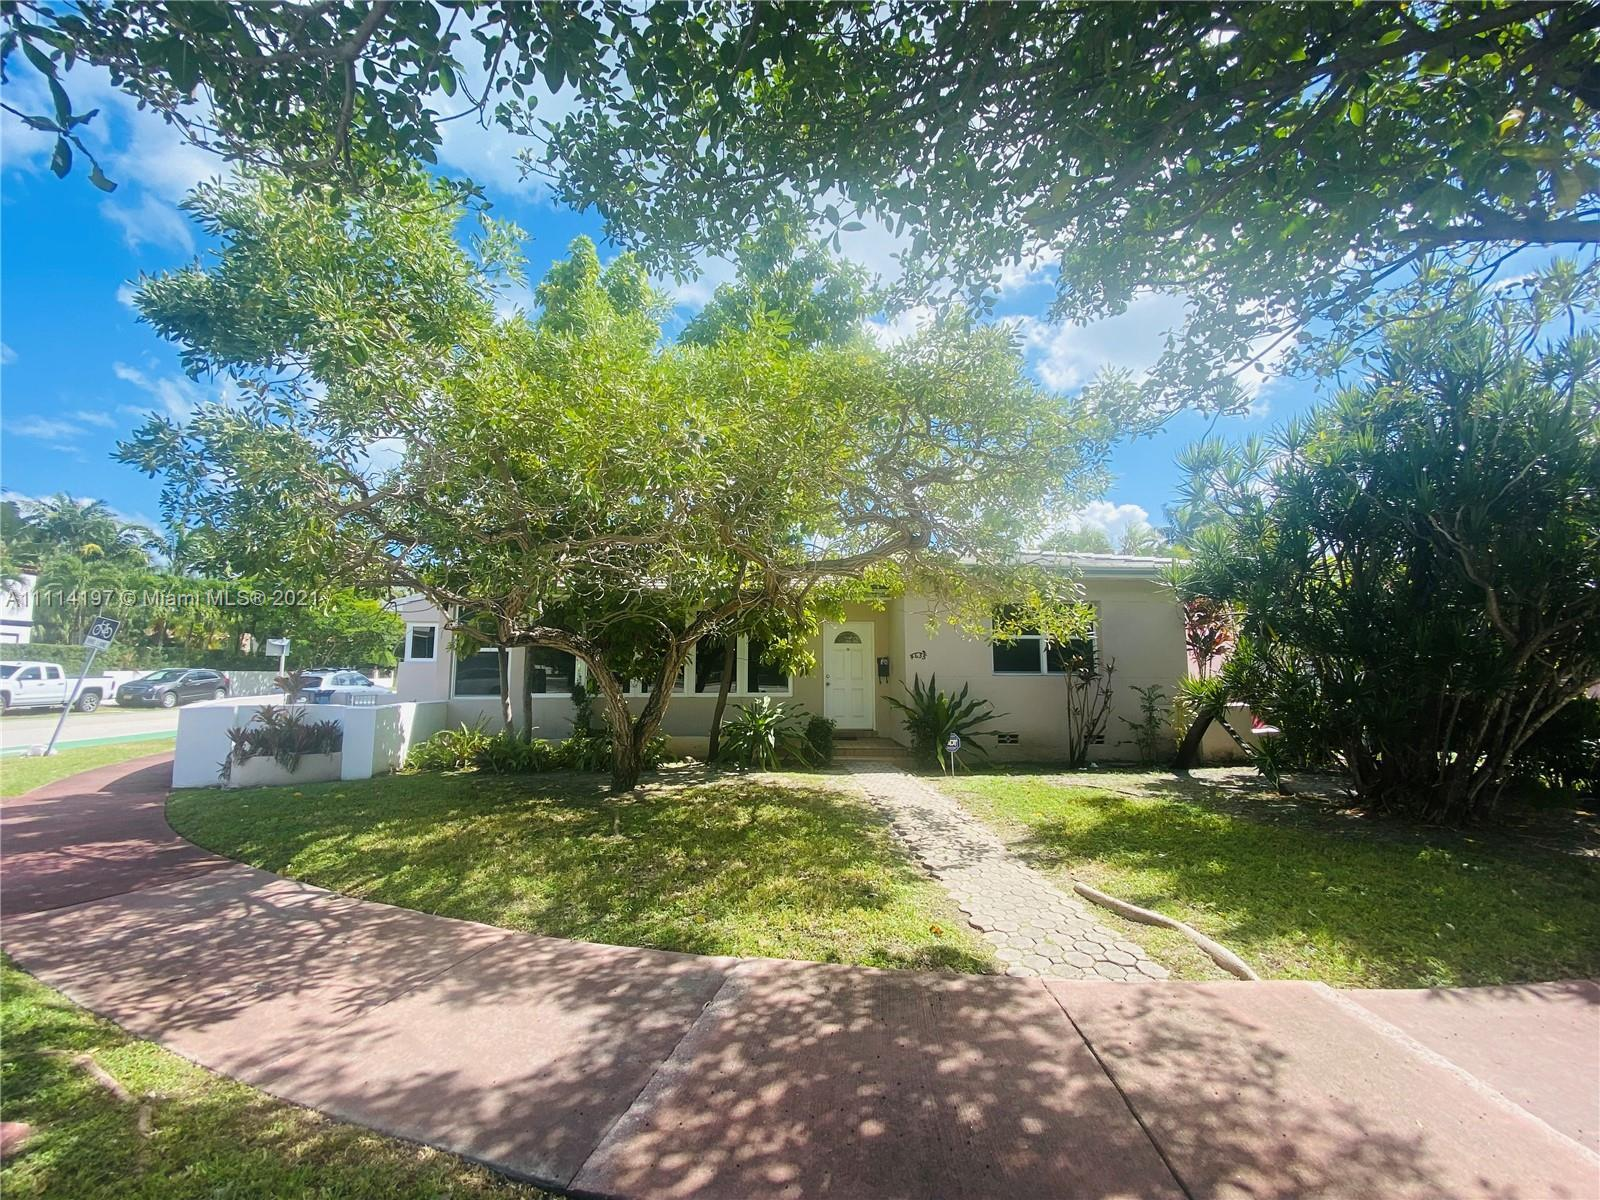 CHARMING MIMO STYLE 3BR, 2 BTH HOME CENTRALLY LOCATED JUST ONE BLOCK AWAY FROM THE RITZ CARLTON RESI